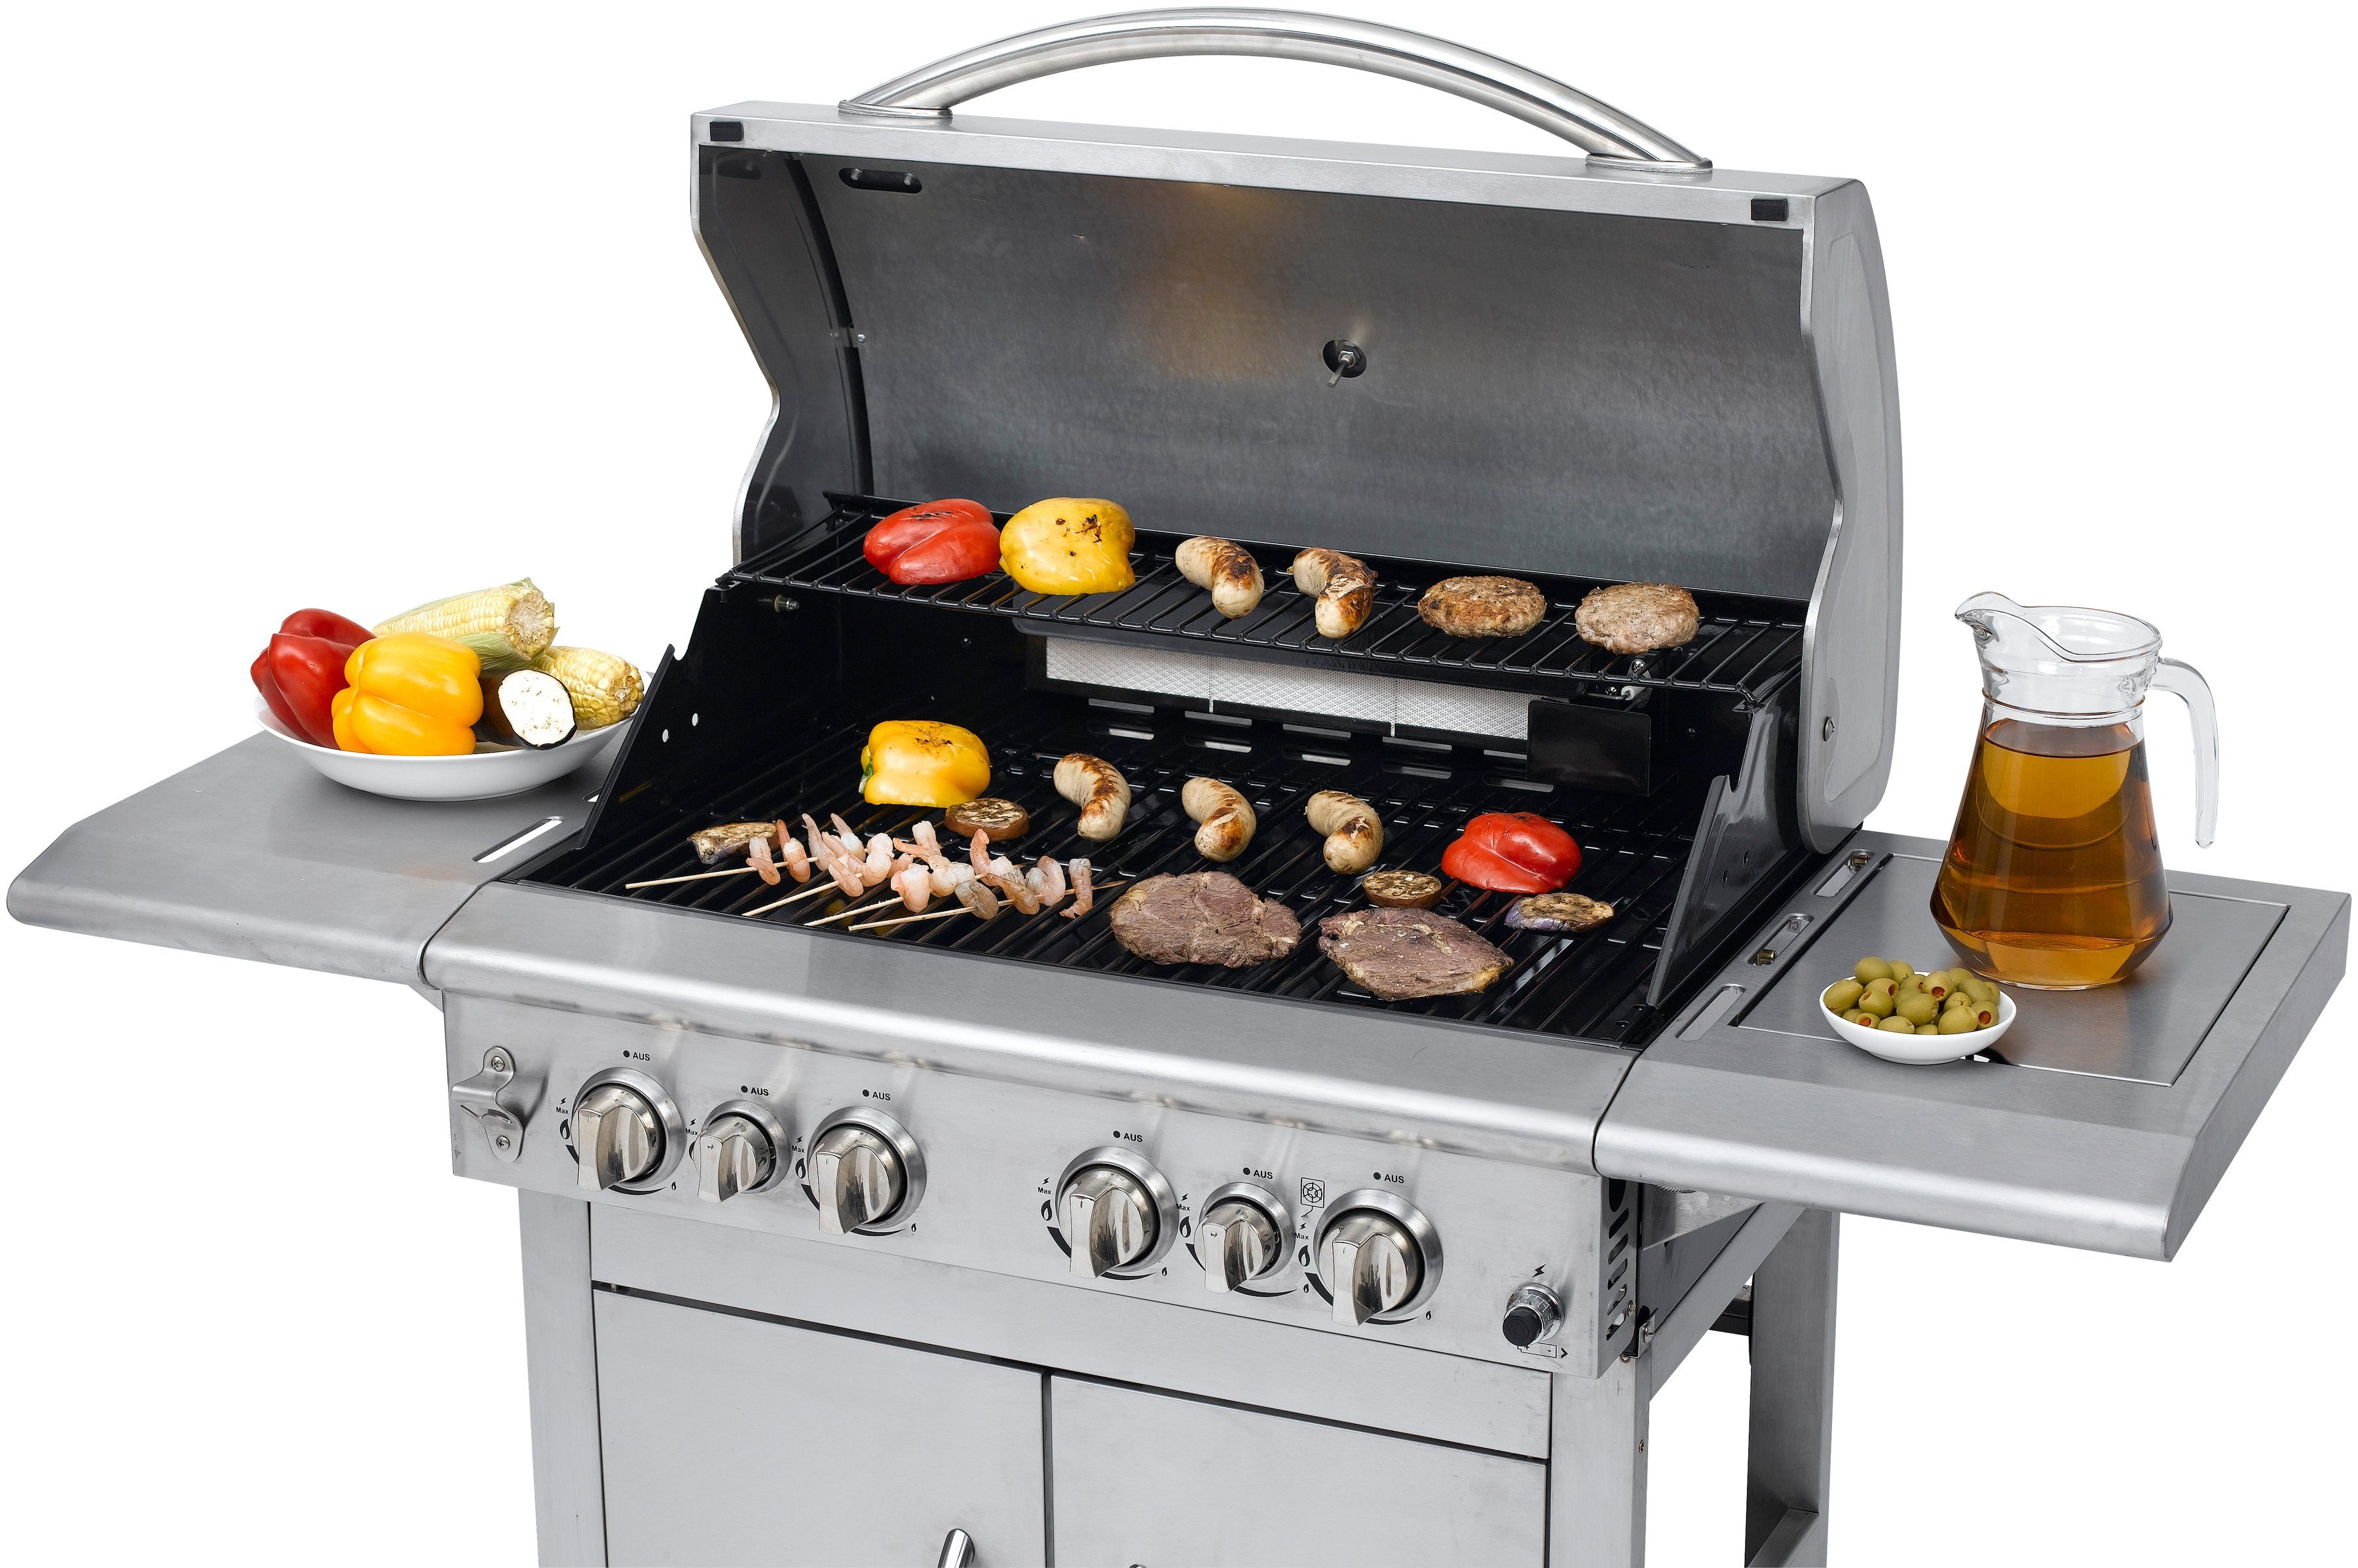 Enders Gasgrill Boston 3 K : Enders gasgrill boston k wetterschutzhülle amazon garten